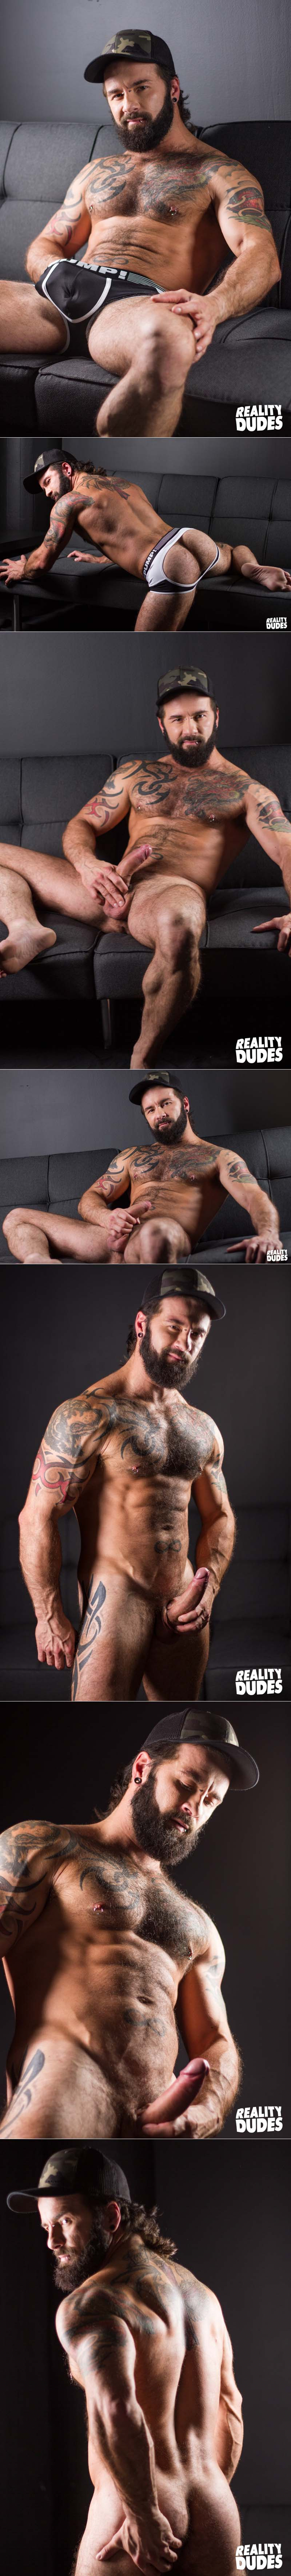 Manuel Deboxer at Reality Dudes Network